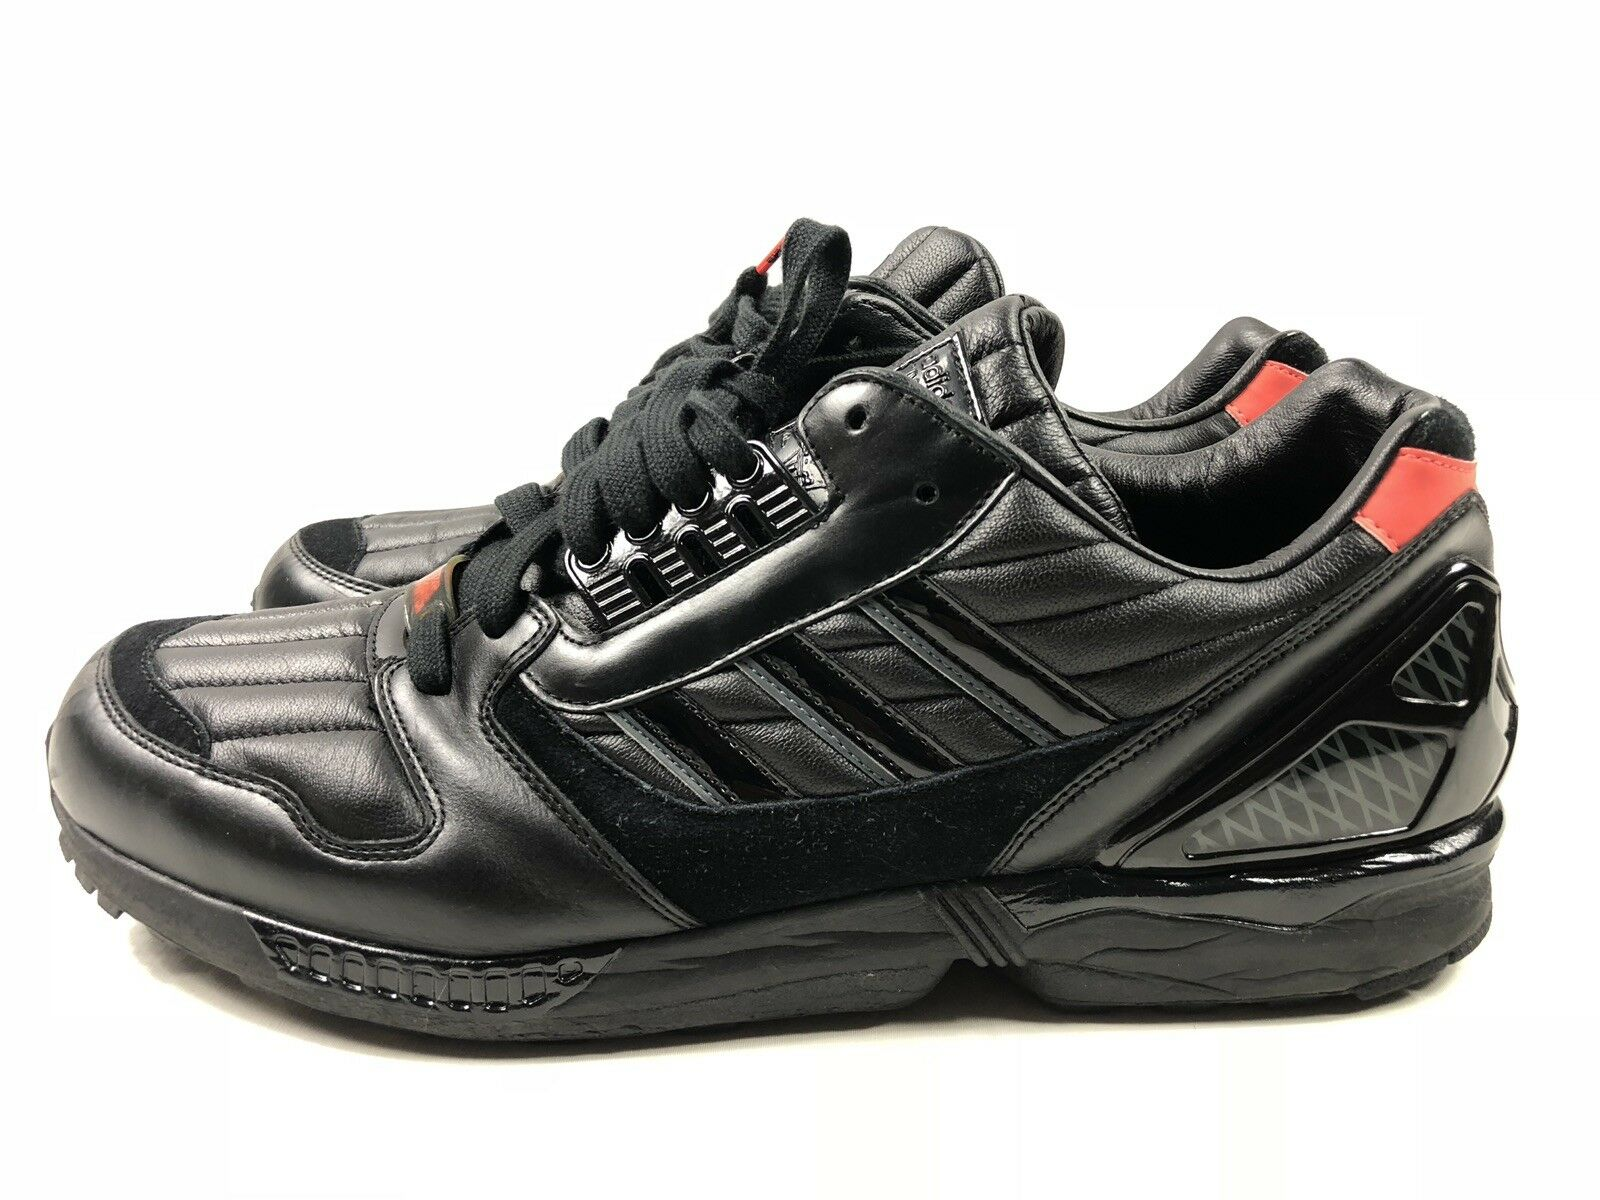 Adidas ZX8000 Darth Vader Star Wars shoes Size 14